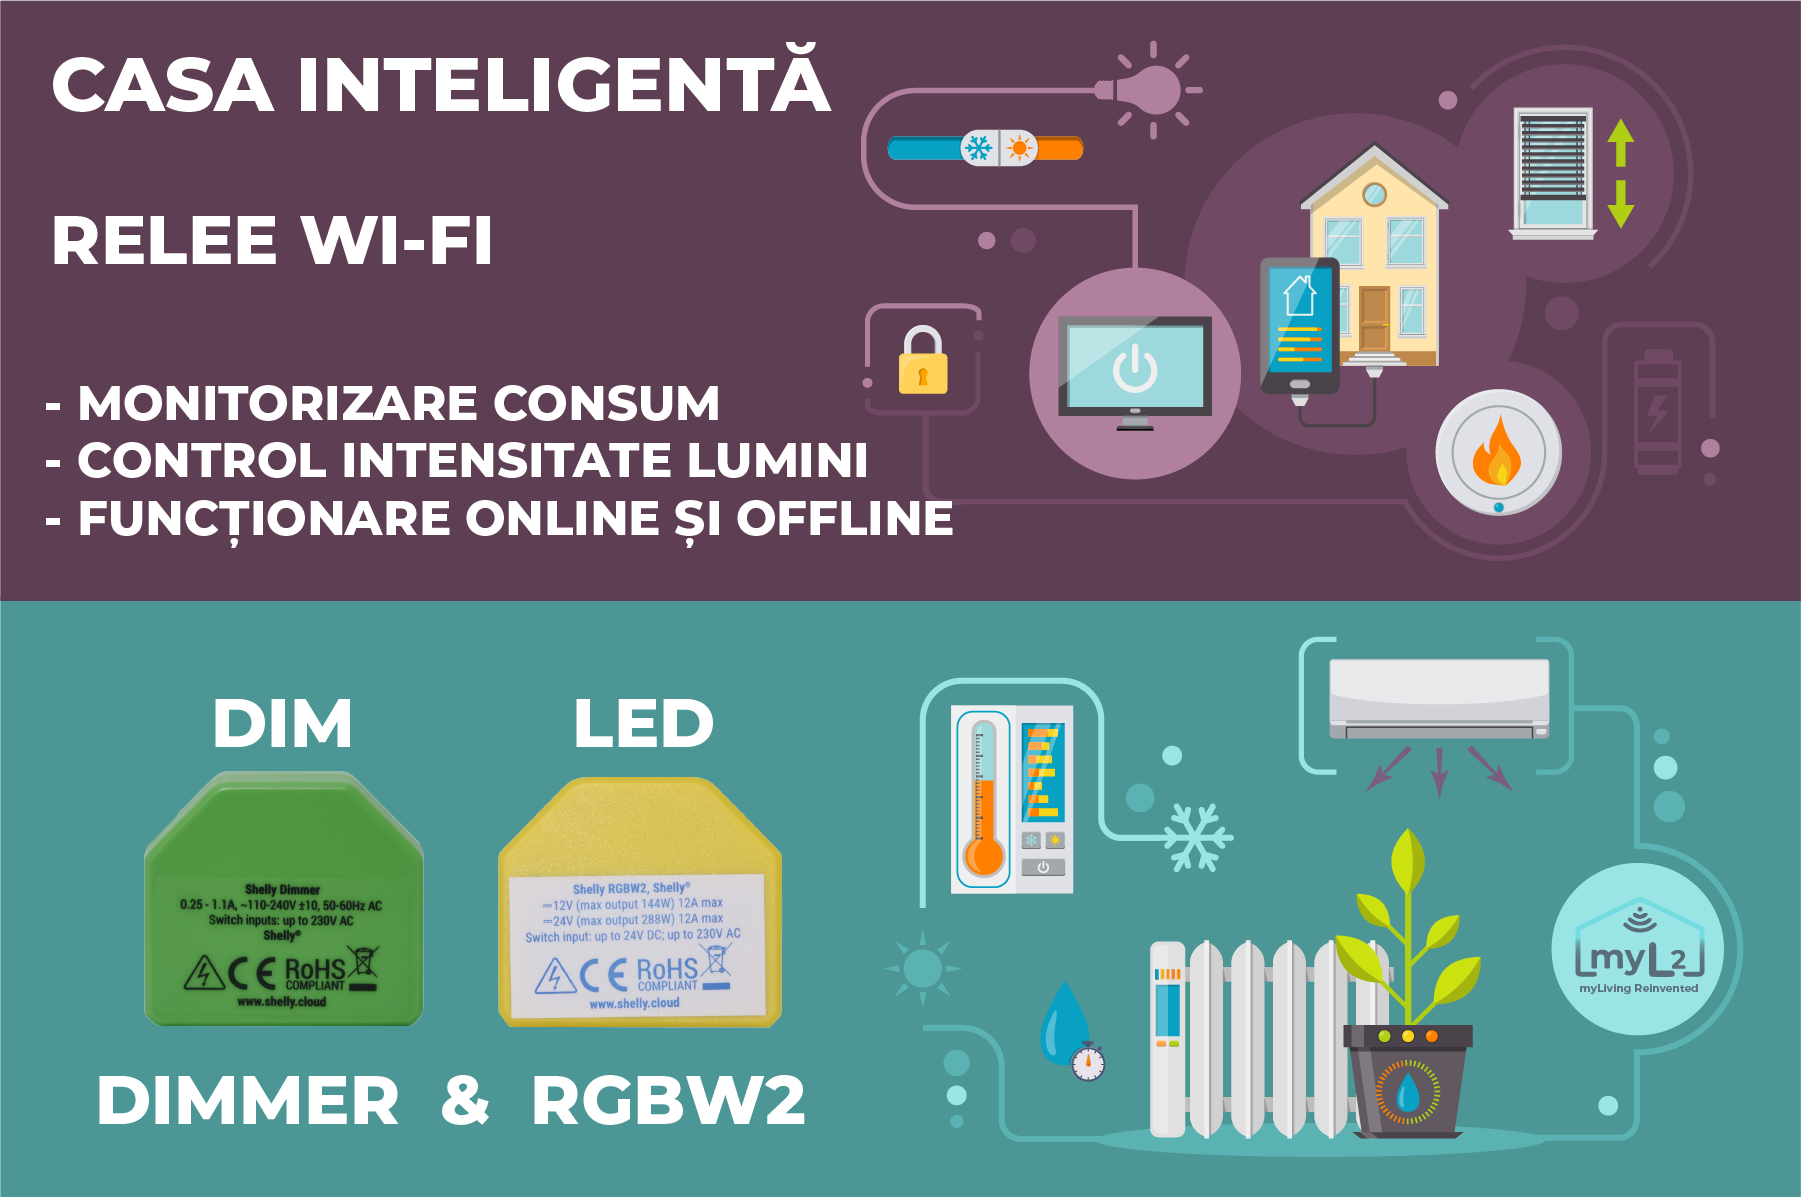 shelly dimmer shelly rgbw2 relee smart wifi pentru automatizari si monitorizare consum